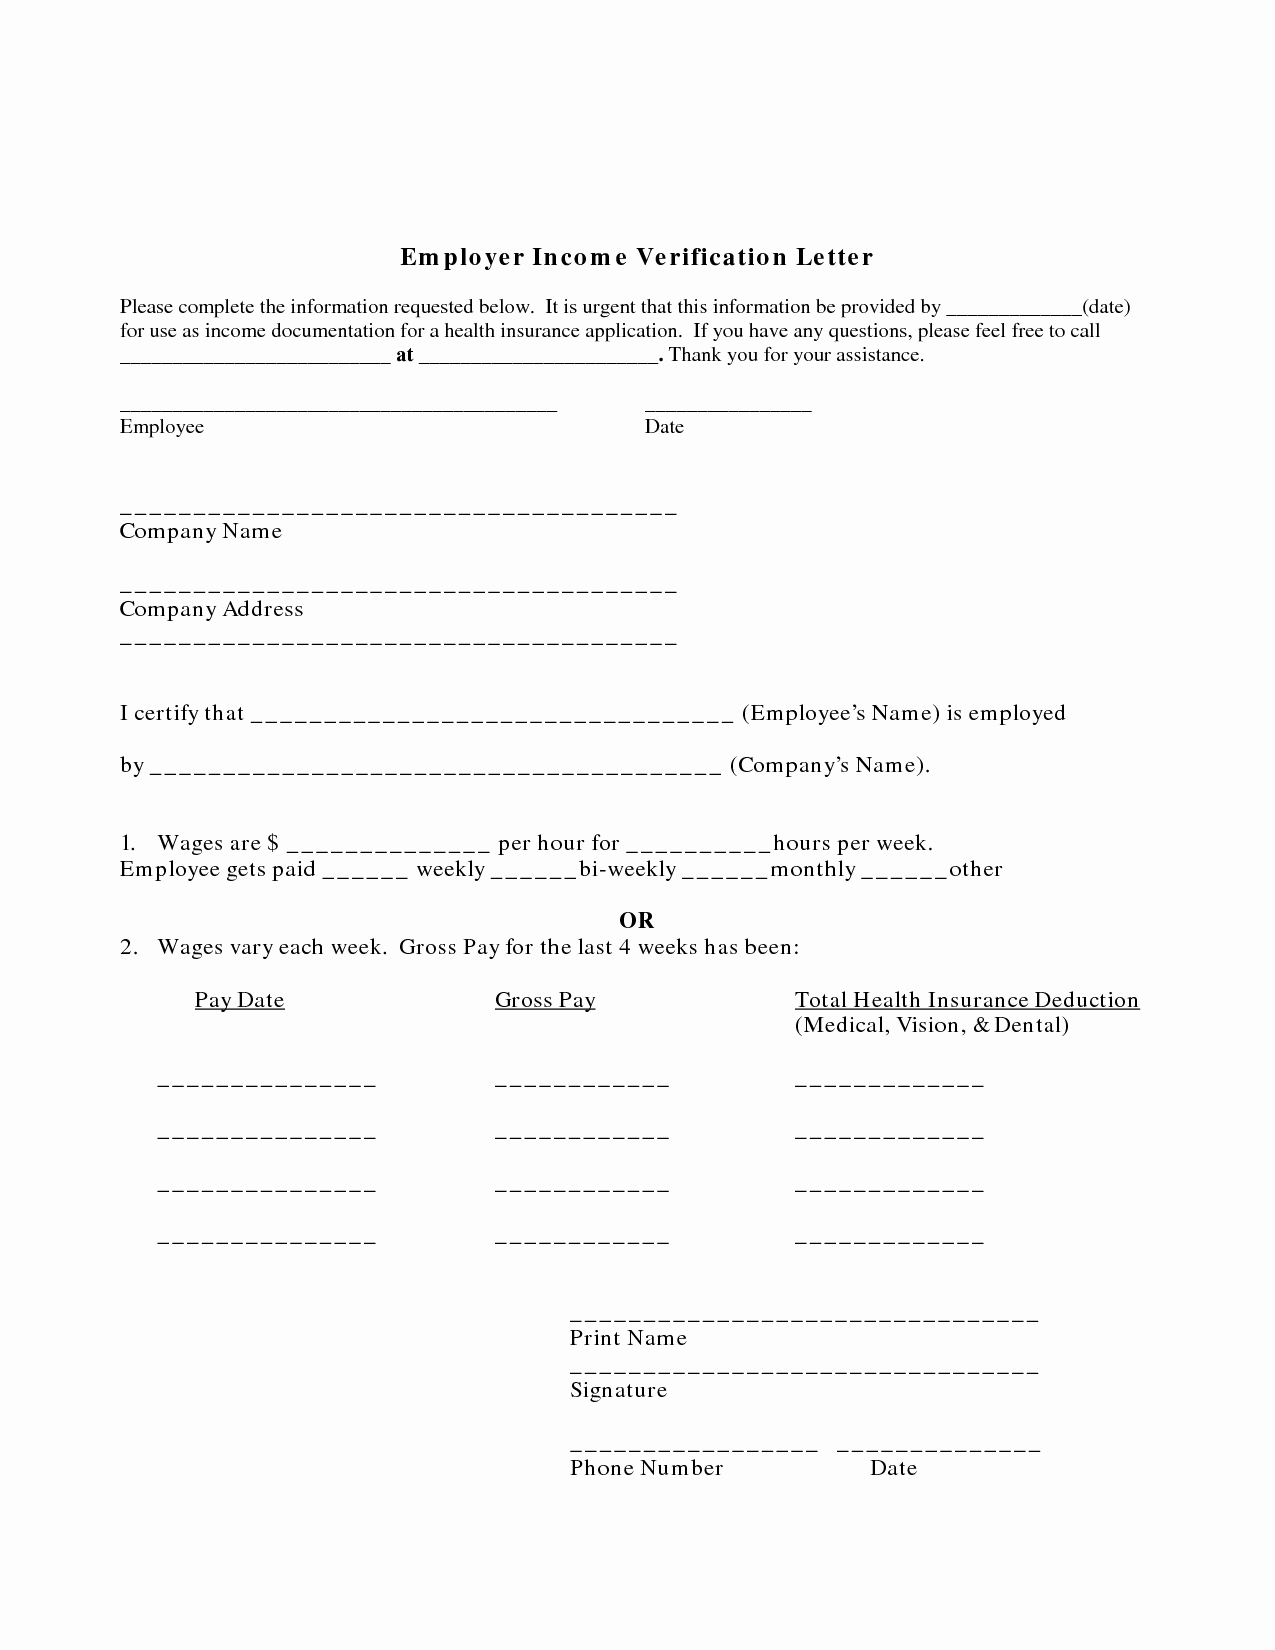 Income Verification form Template Elegant In E Verification Letter Free Printable Documents